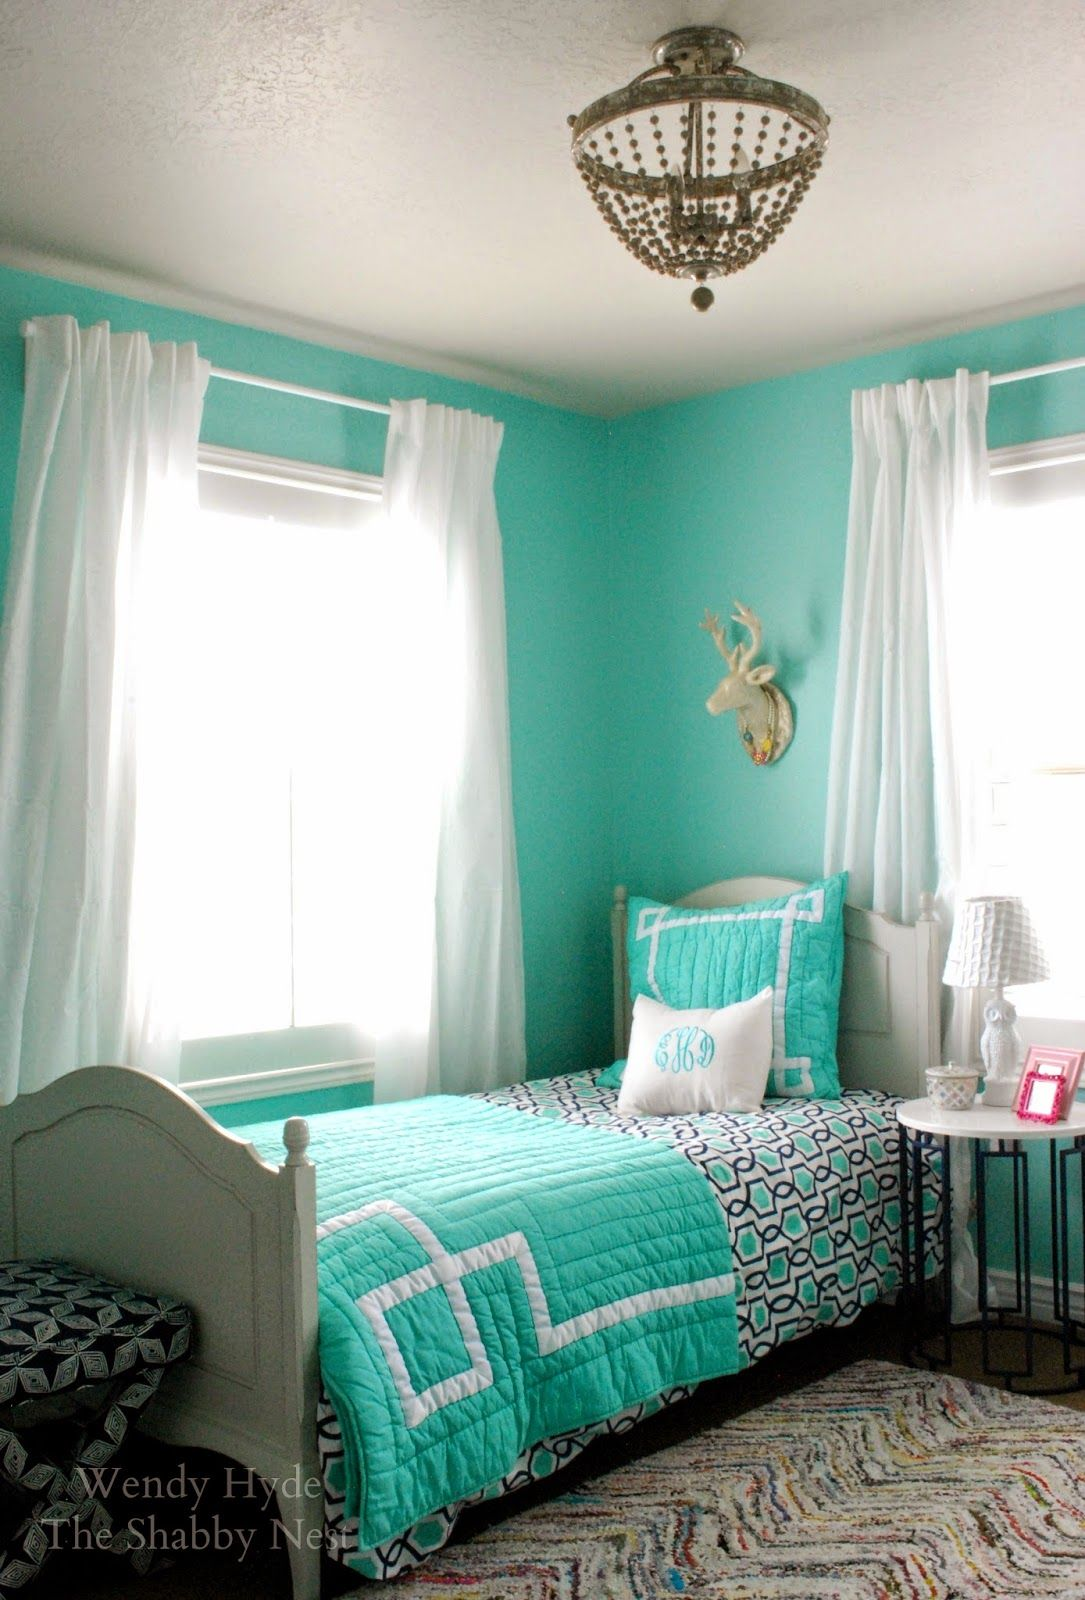 15 best images about turquoise room decorations - Bedroom Decorating Ideas Blue And Green